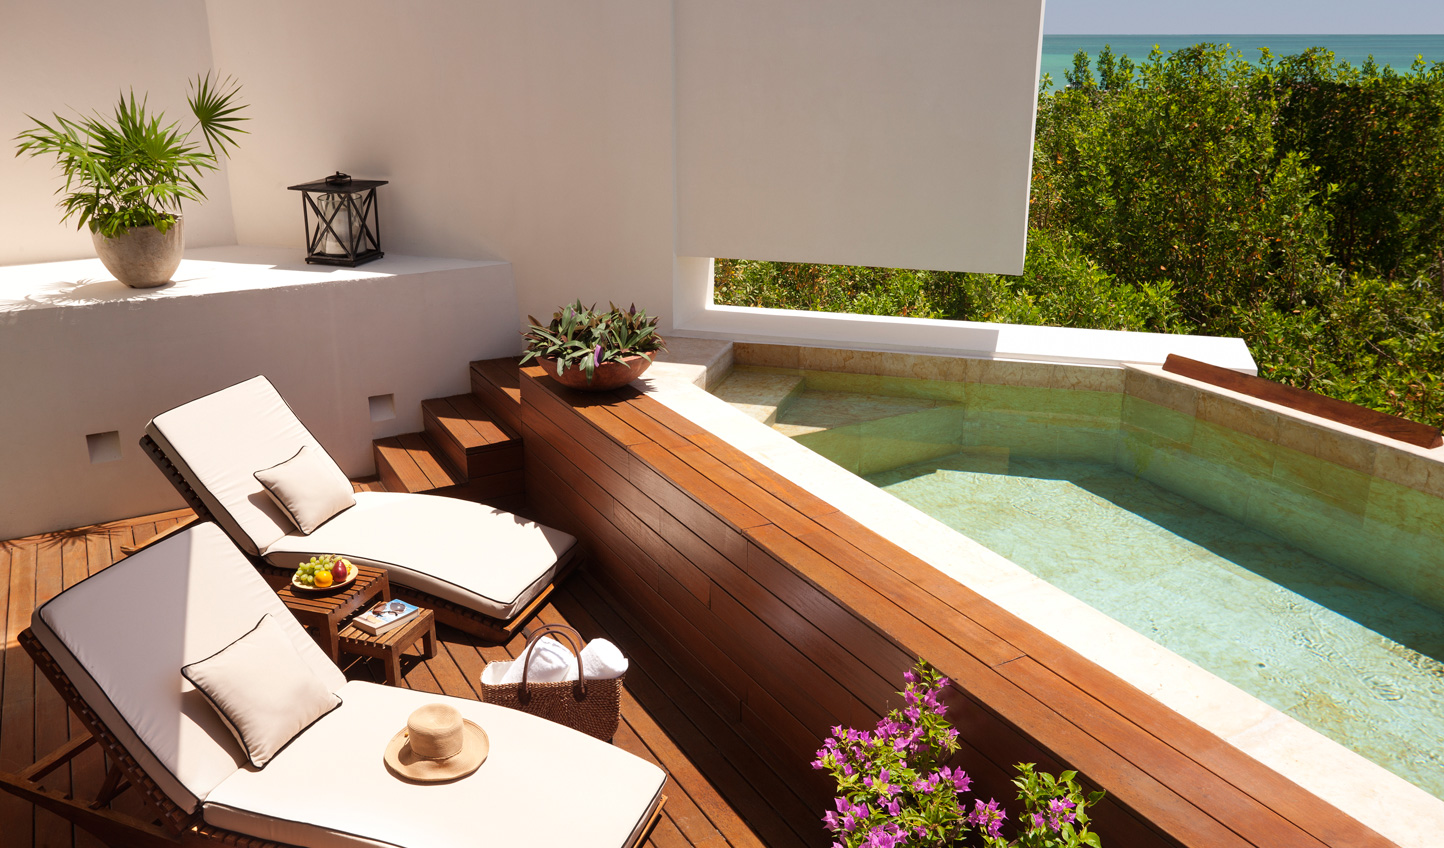 Cool off in your private plunge pool